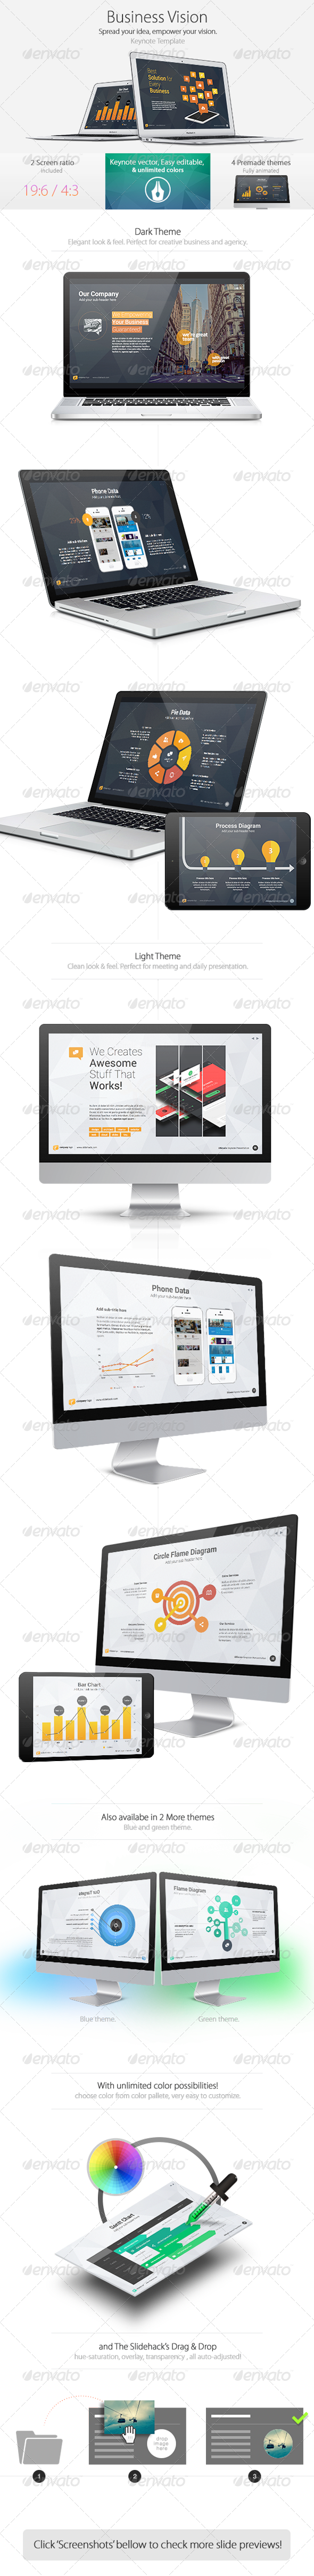 GraphicRiver Business Vision Keynote Template 7731540